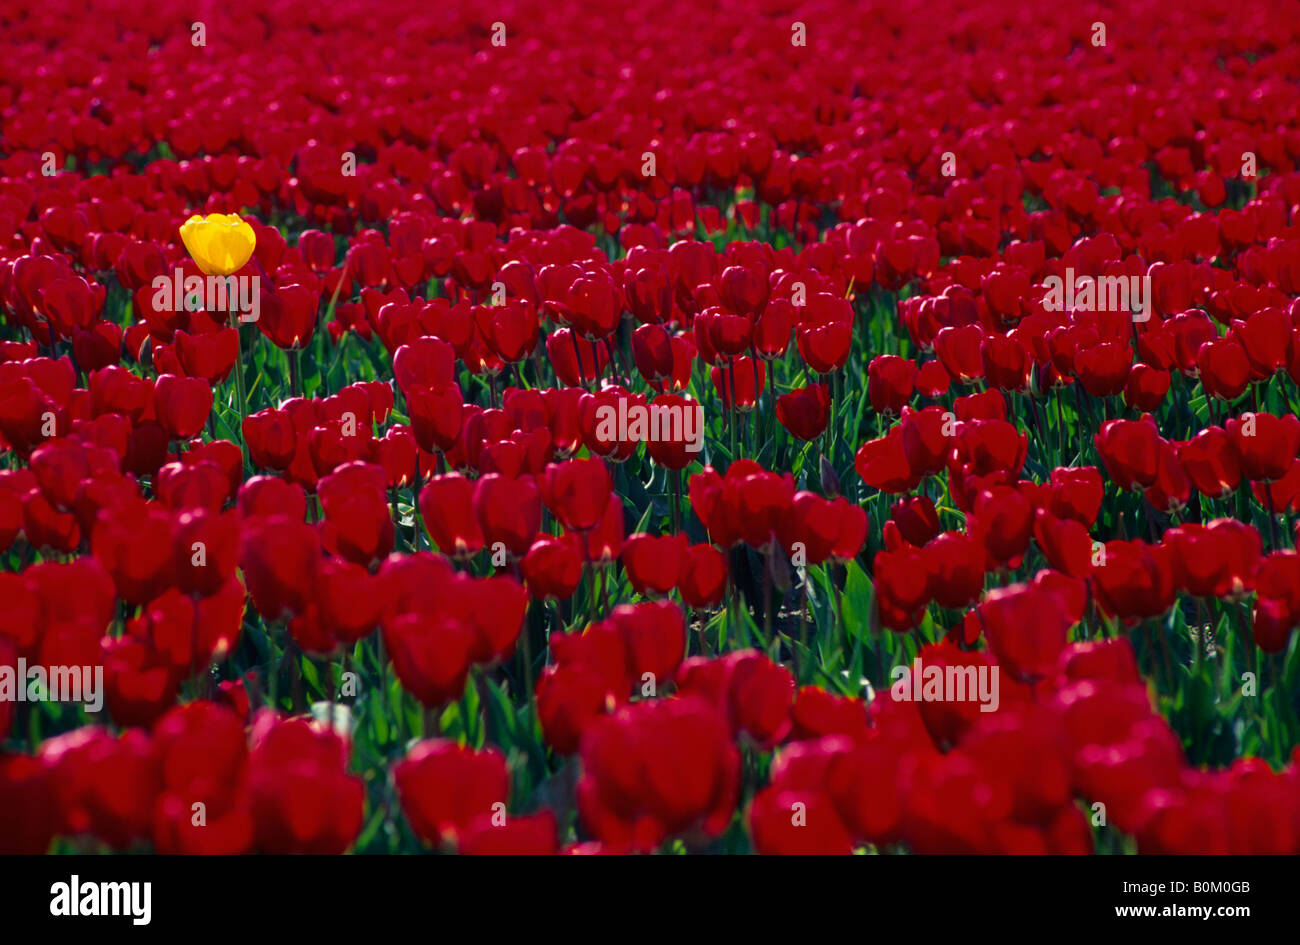 Single yellow tulip rising above a field of red tulips La Conner Washington USA - Stock Image